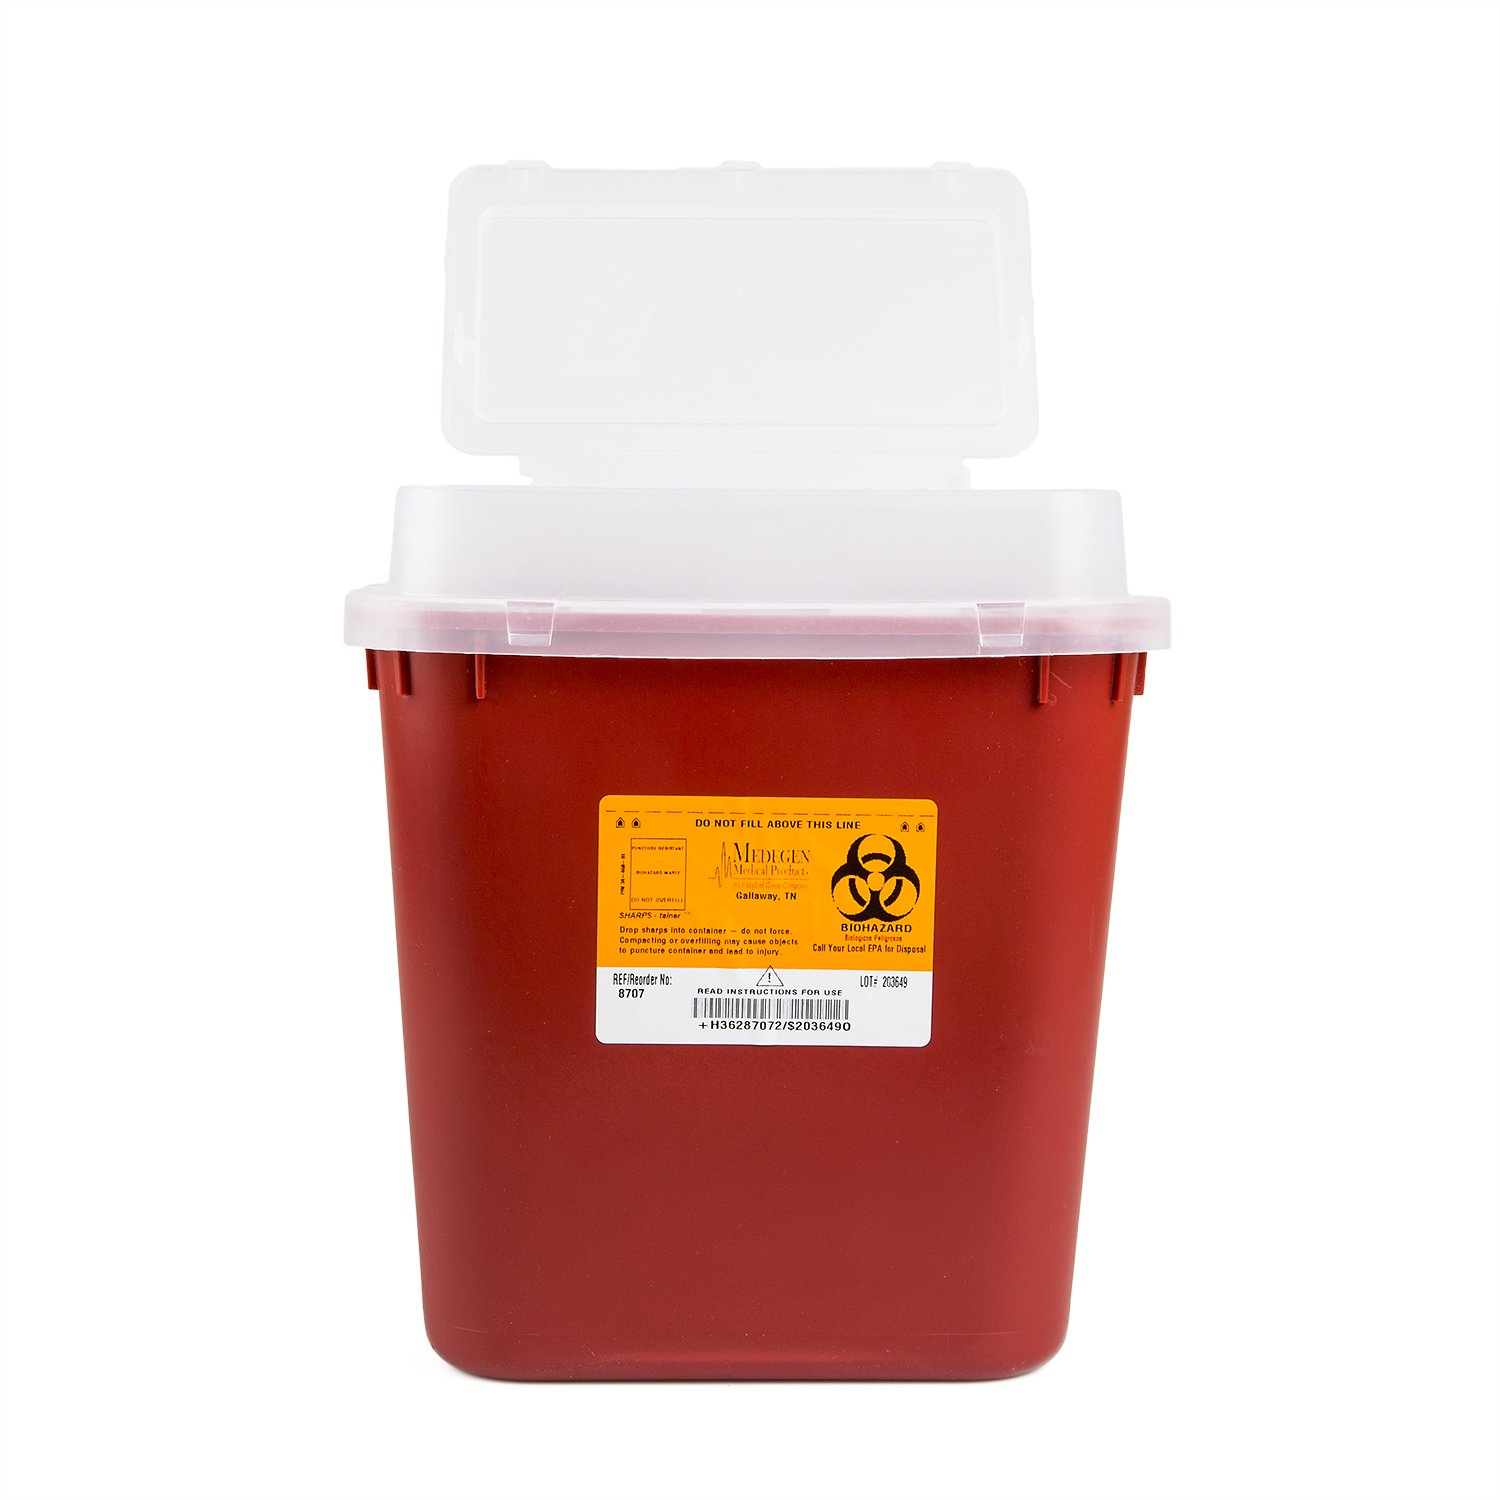 Medegen Medical Products 8707 Stackable Sharps Containers with Print, Polypropylene, Large, 10'' x 7'' x 11-1/4'' Size, 2 gal Capacity, Red/Black (Pack of 10) by Medegen Medical Products